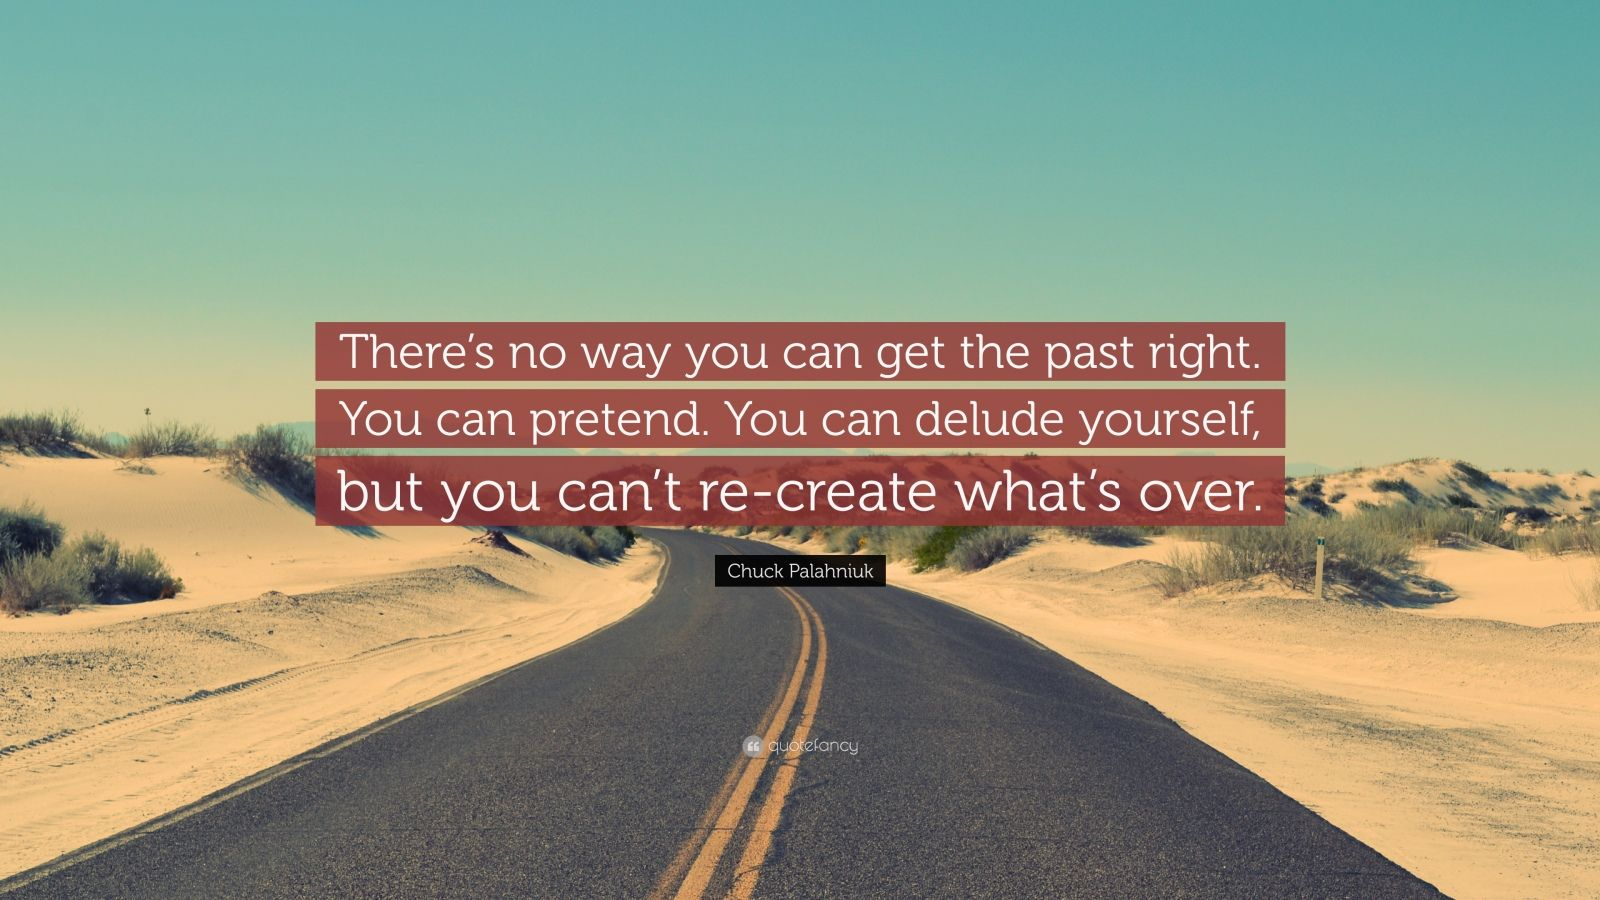 """Chuck Palahniuk Quote: """"There's no way you can get the past right. You can pretend. You can delude yourself, but you can't re-create what's over."""""""